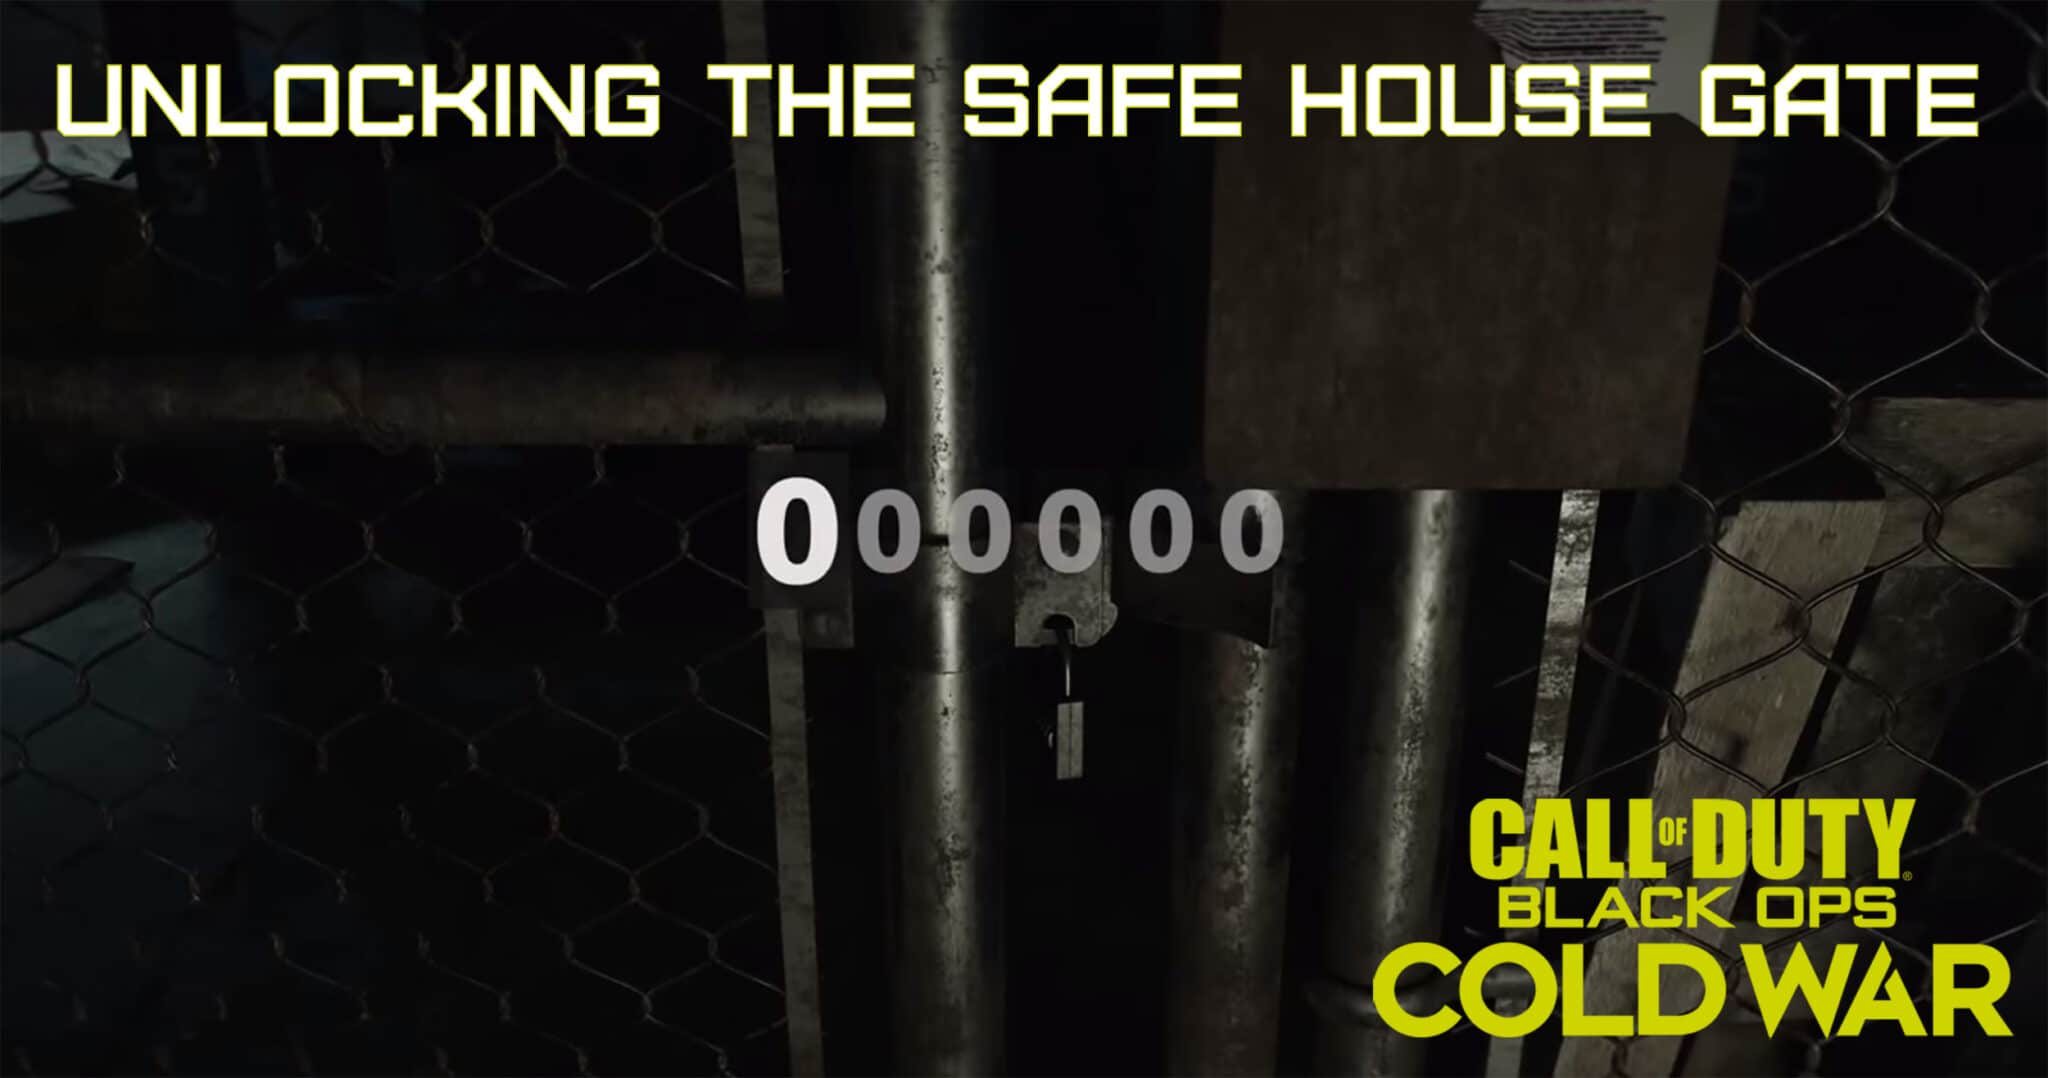 How to Unlock the Safe House Gate in Call of Duty Black Ops Cold War